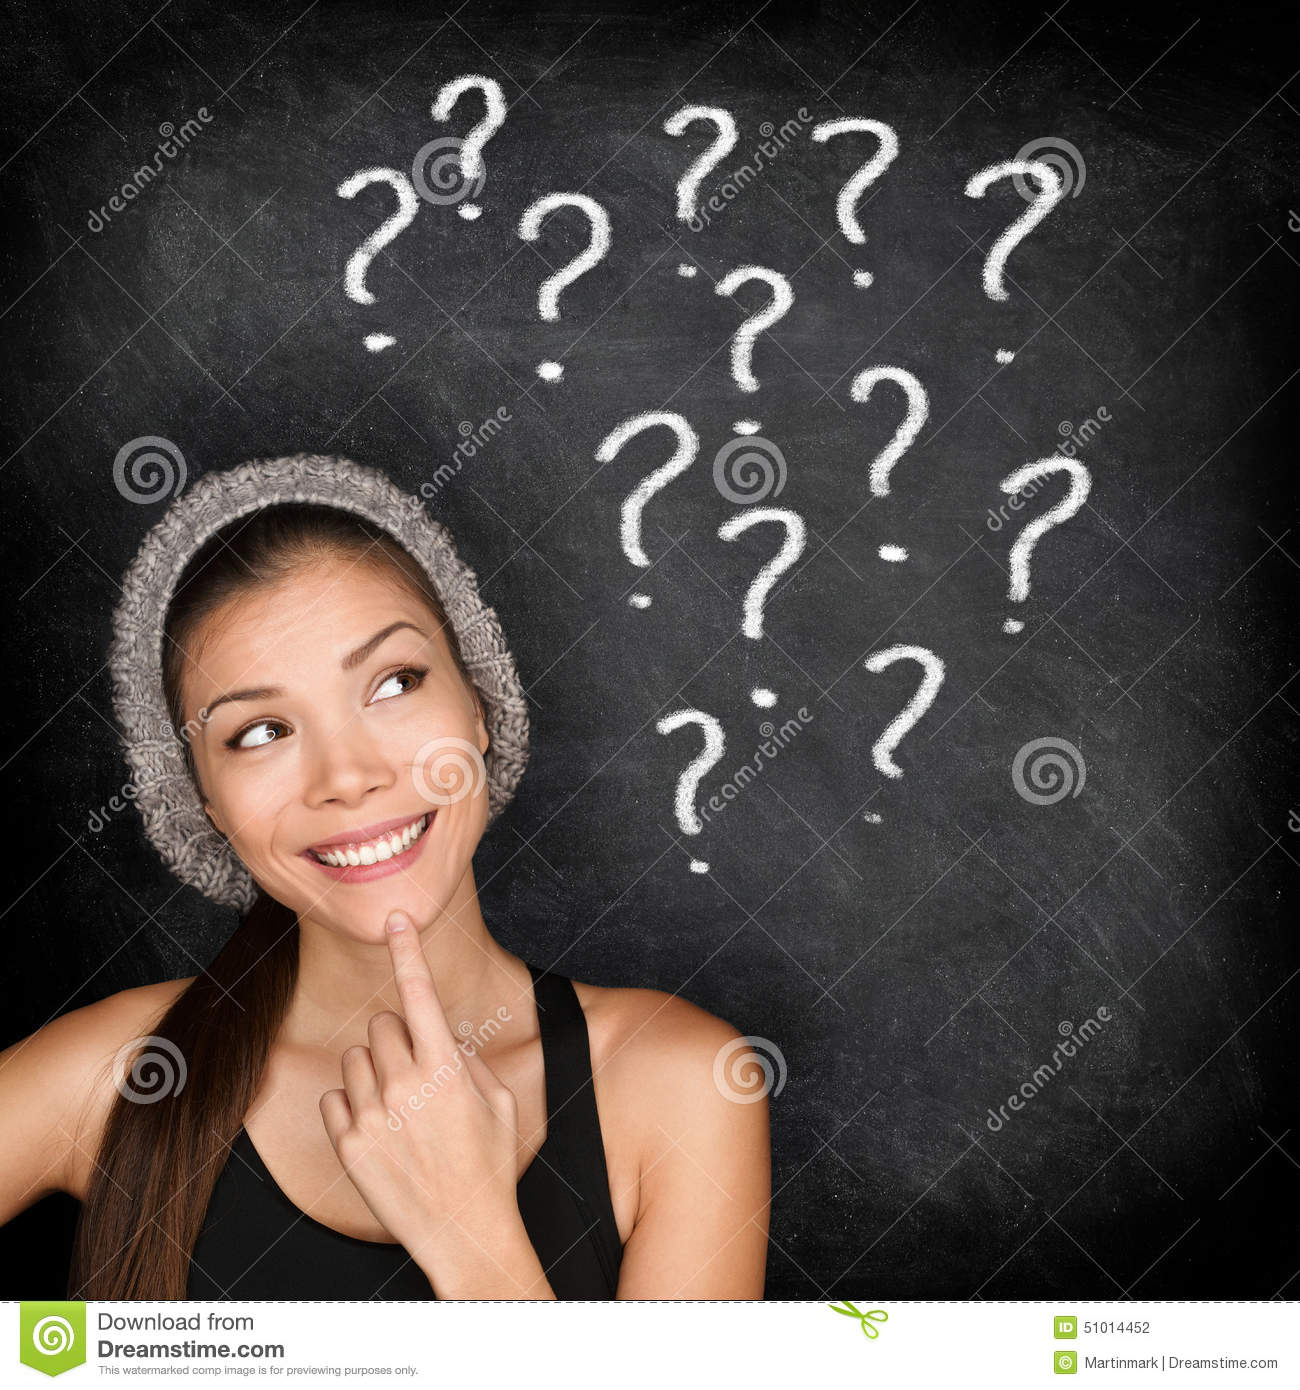 Student thinking with question marks on blackboard